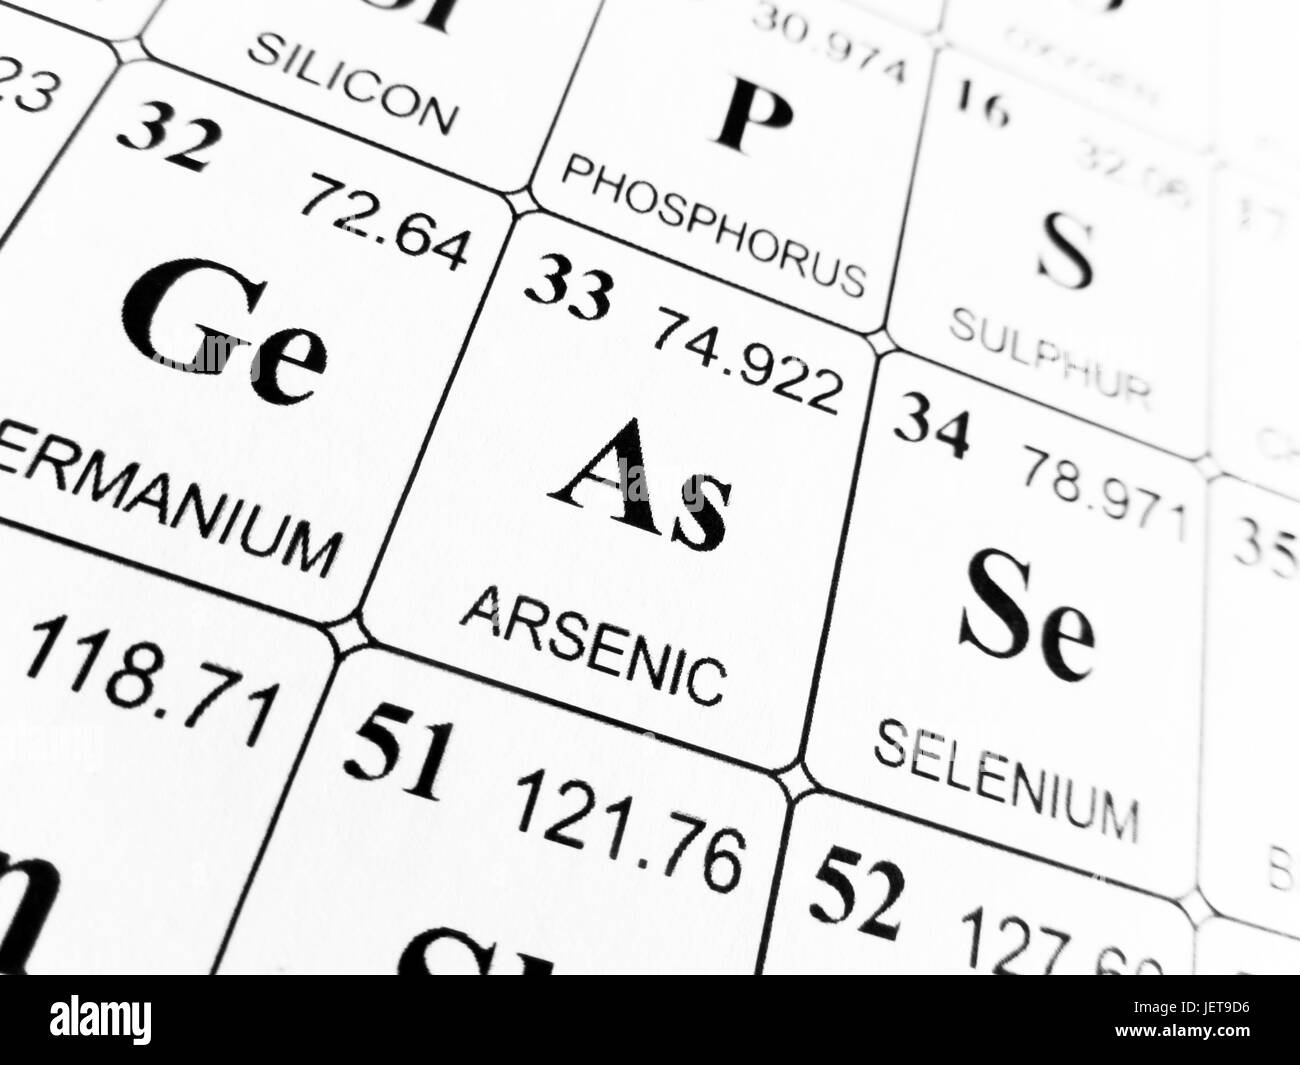 Arsenic on the periodic table of the elements stock photo arsenic on the periodic table of the elements biocorpaavc Image collections